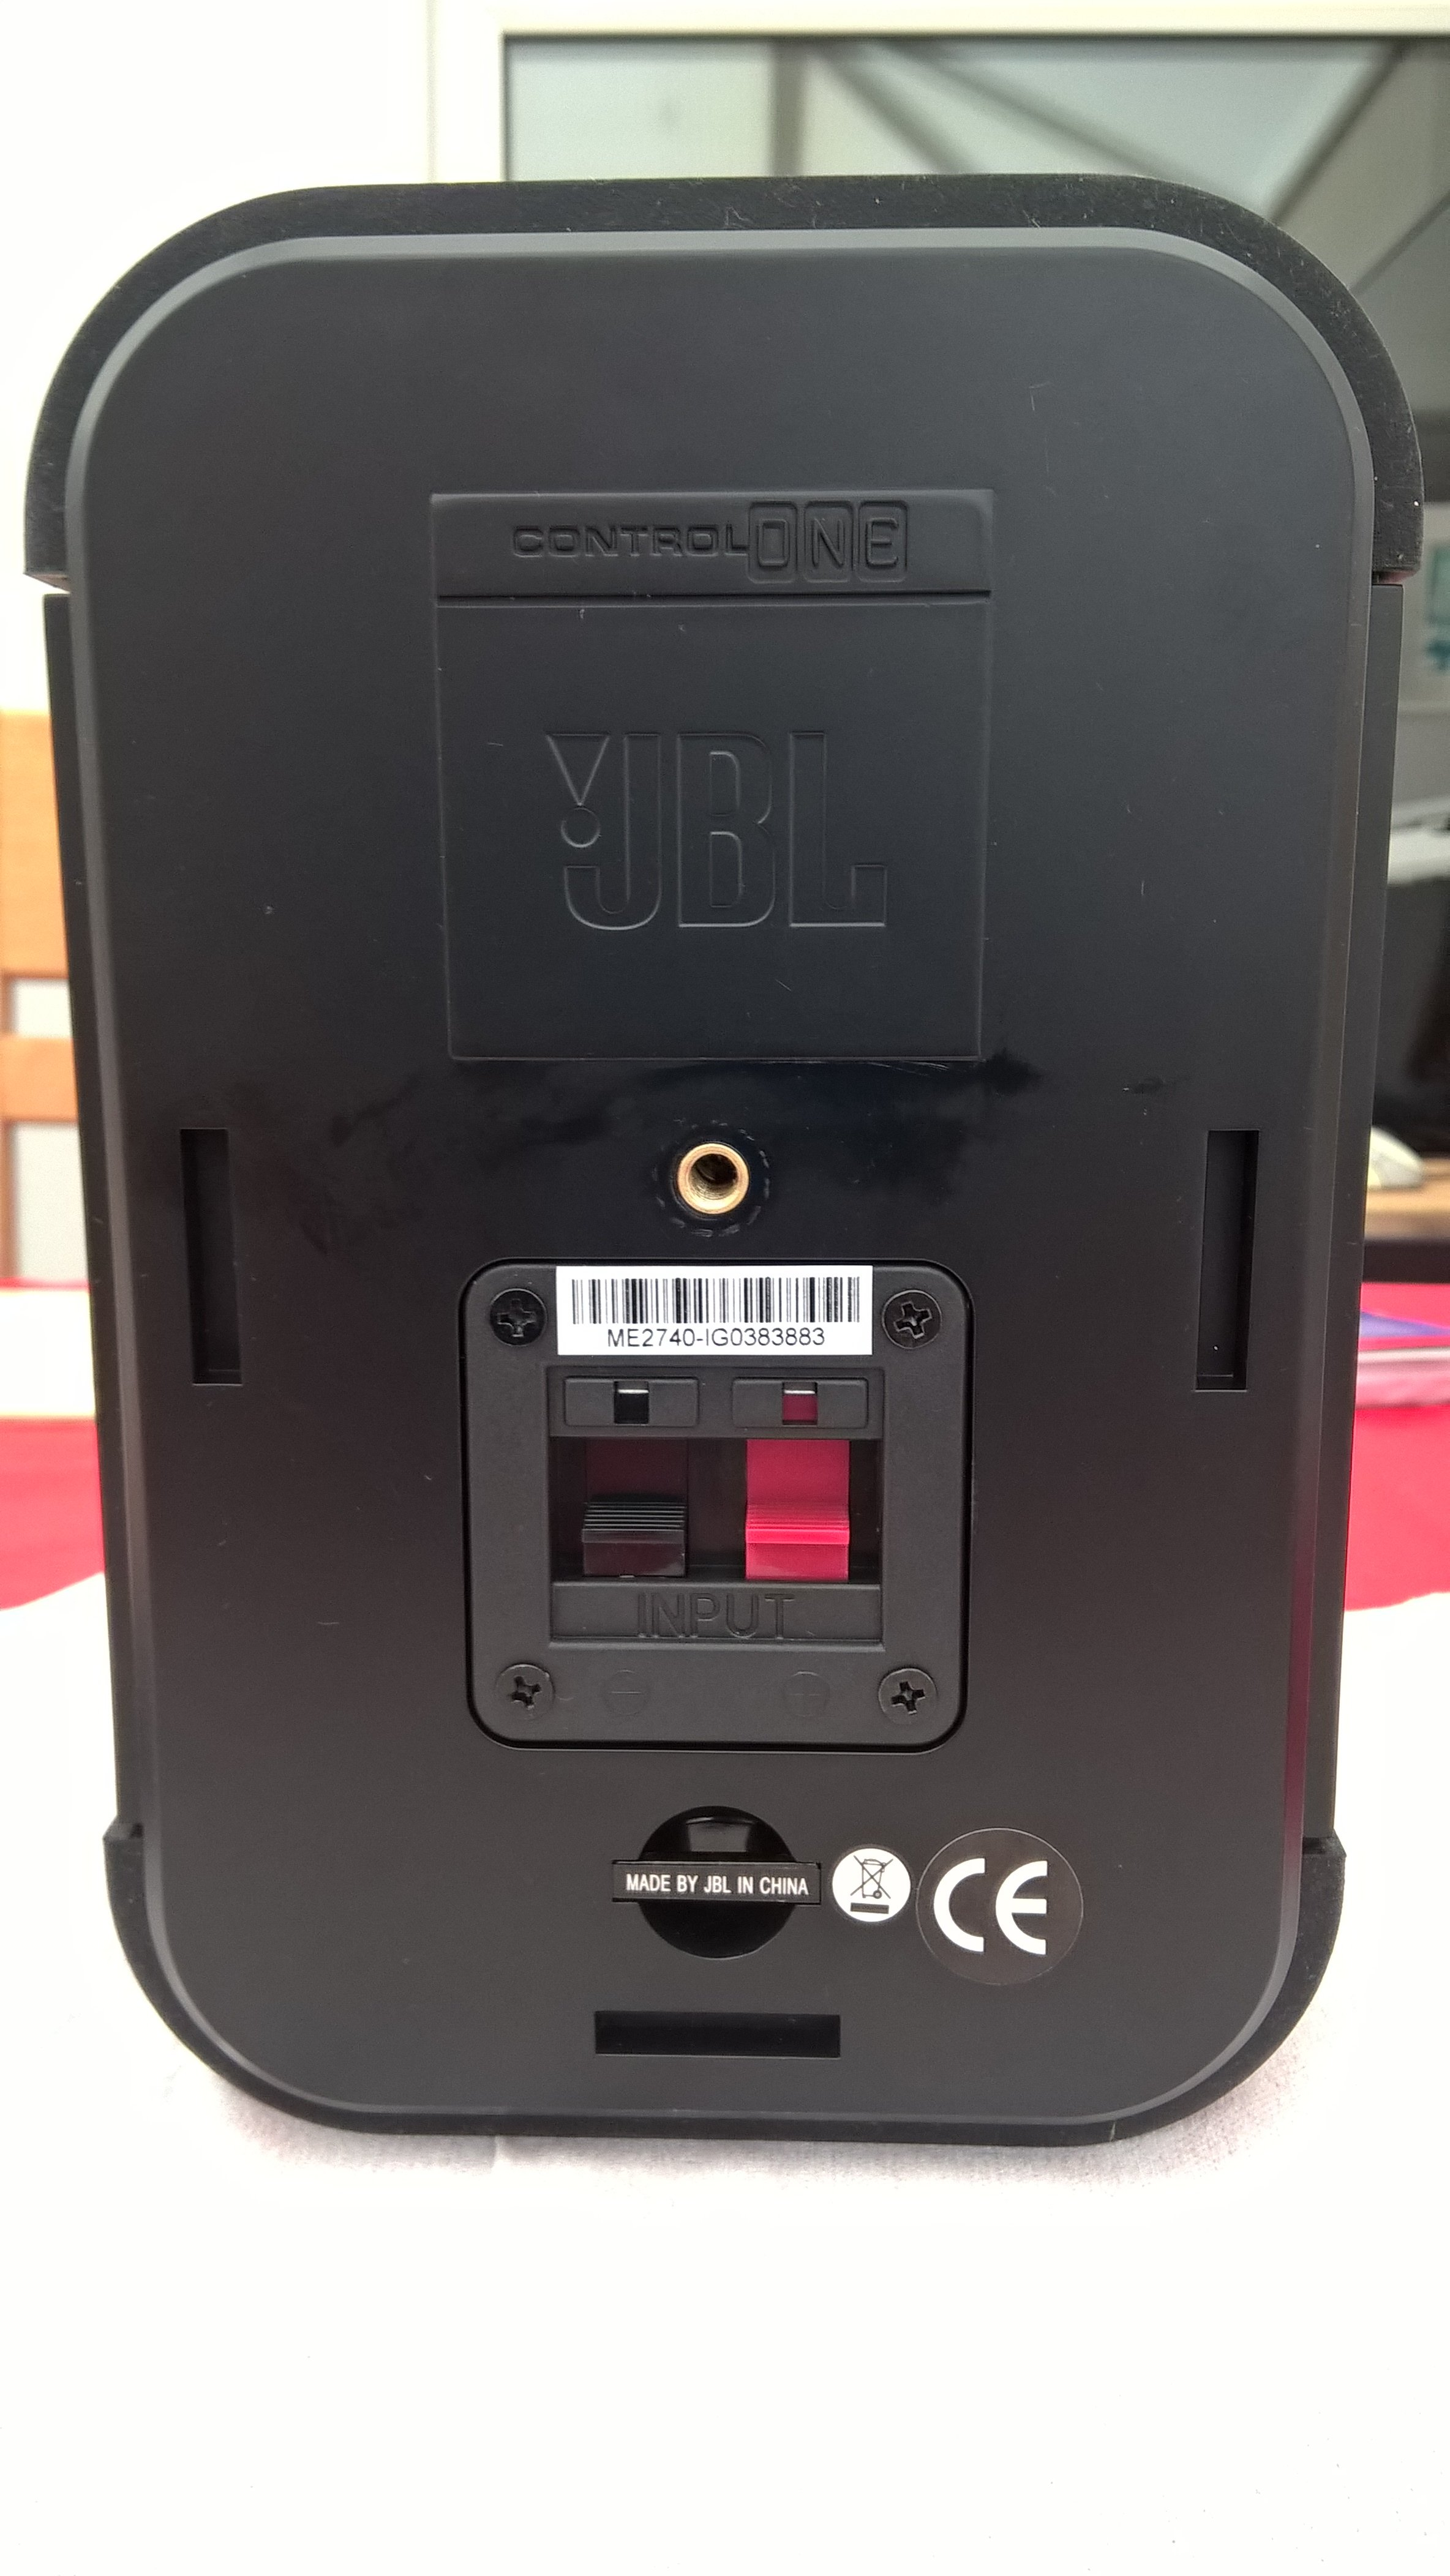 jbl press on building series california today loudspeaker ceiling its infocomm northridge professional contractor speakers industry control introduced leading new